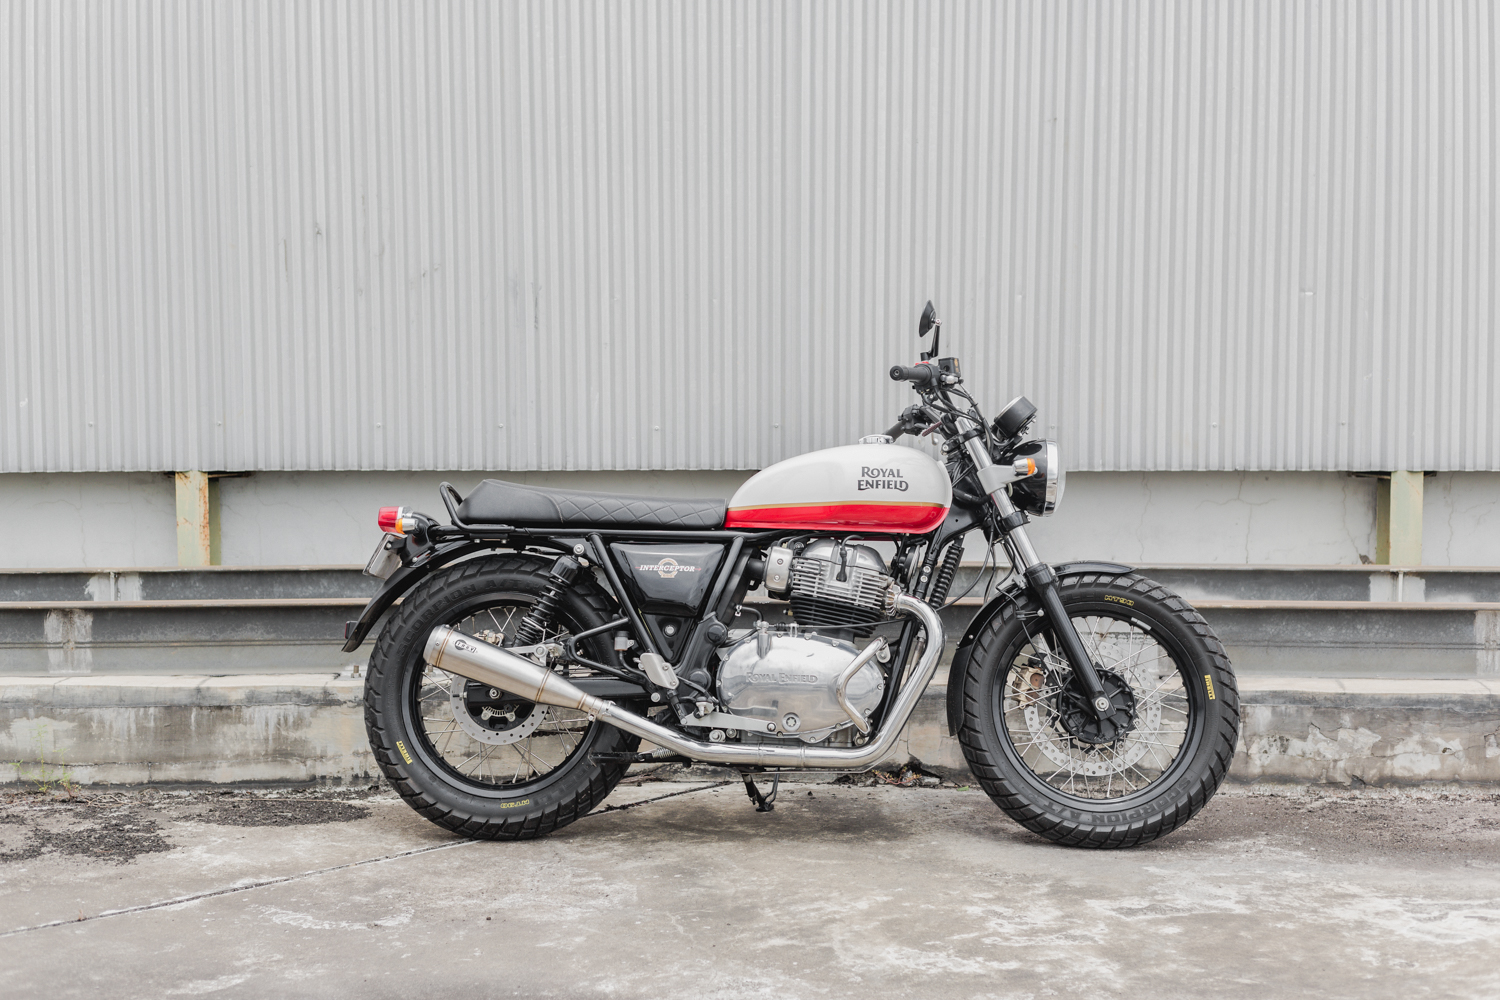 Peony Royal Enfield Perfomance Mufflers Stainless